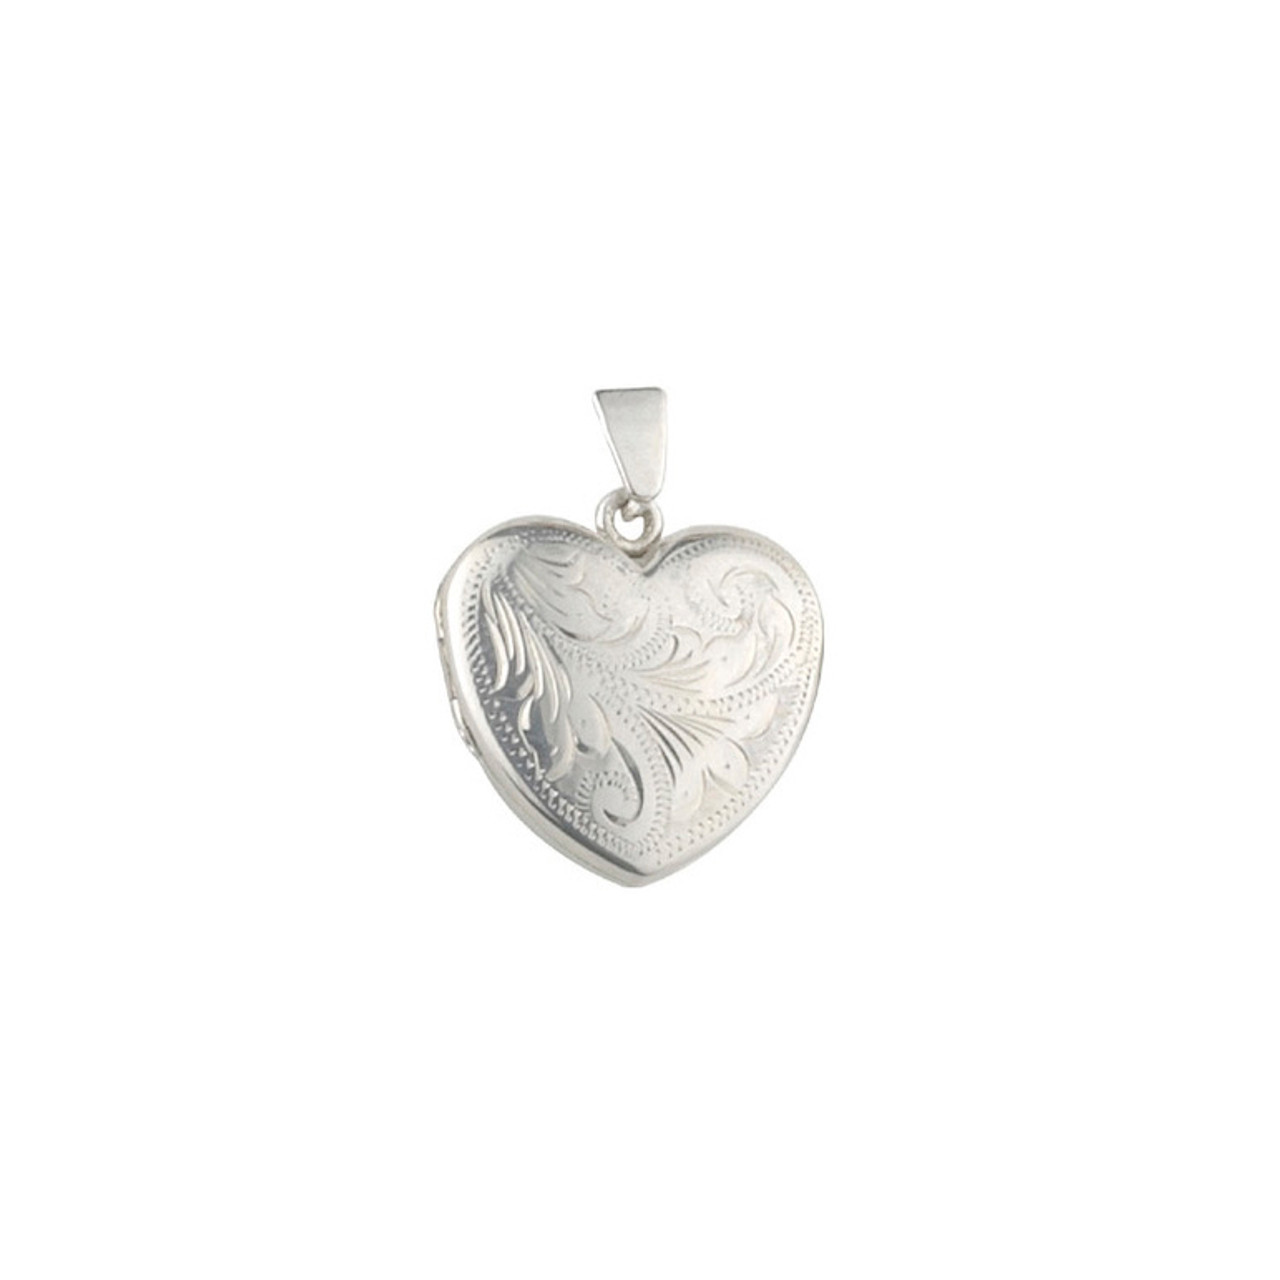 Silver Engraved 19mm Heart shaped Locket & Chain